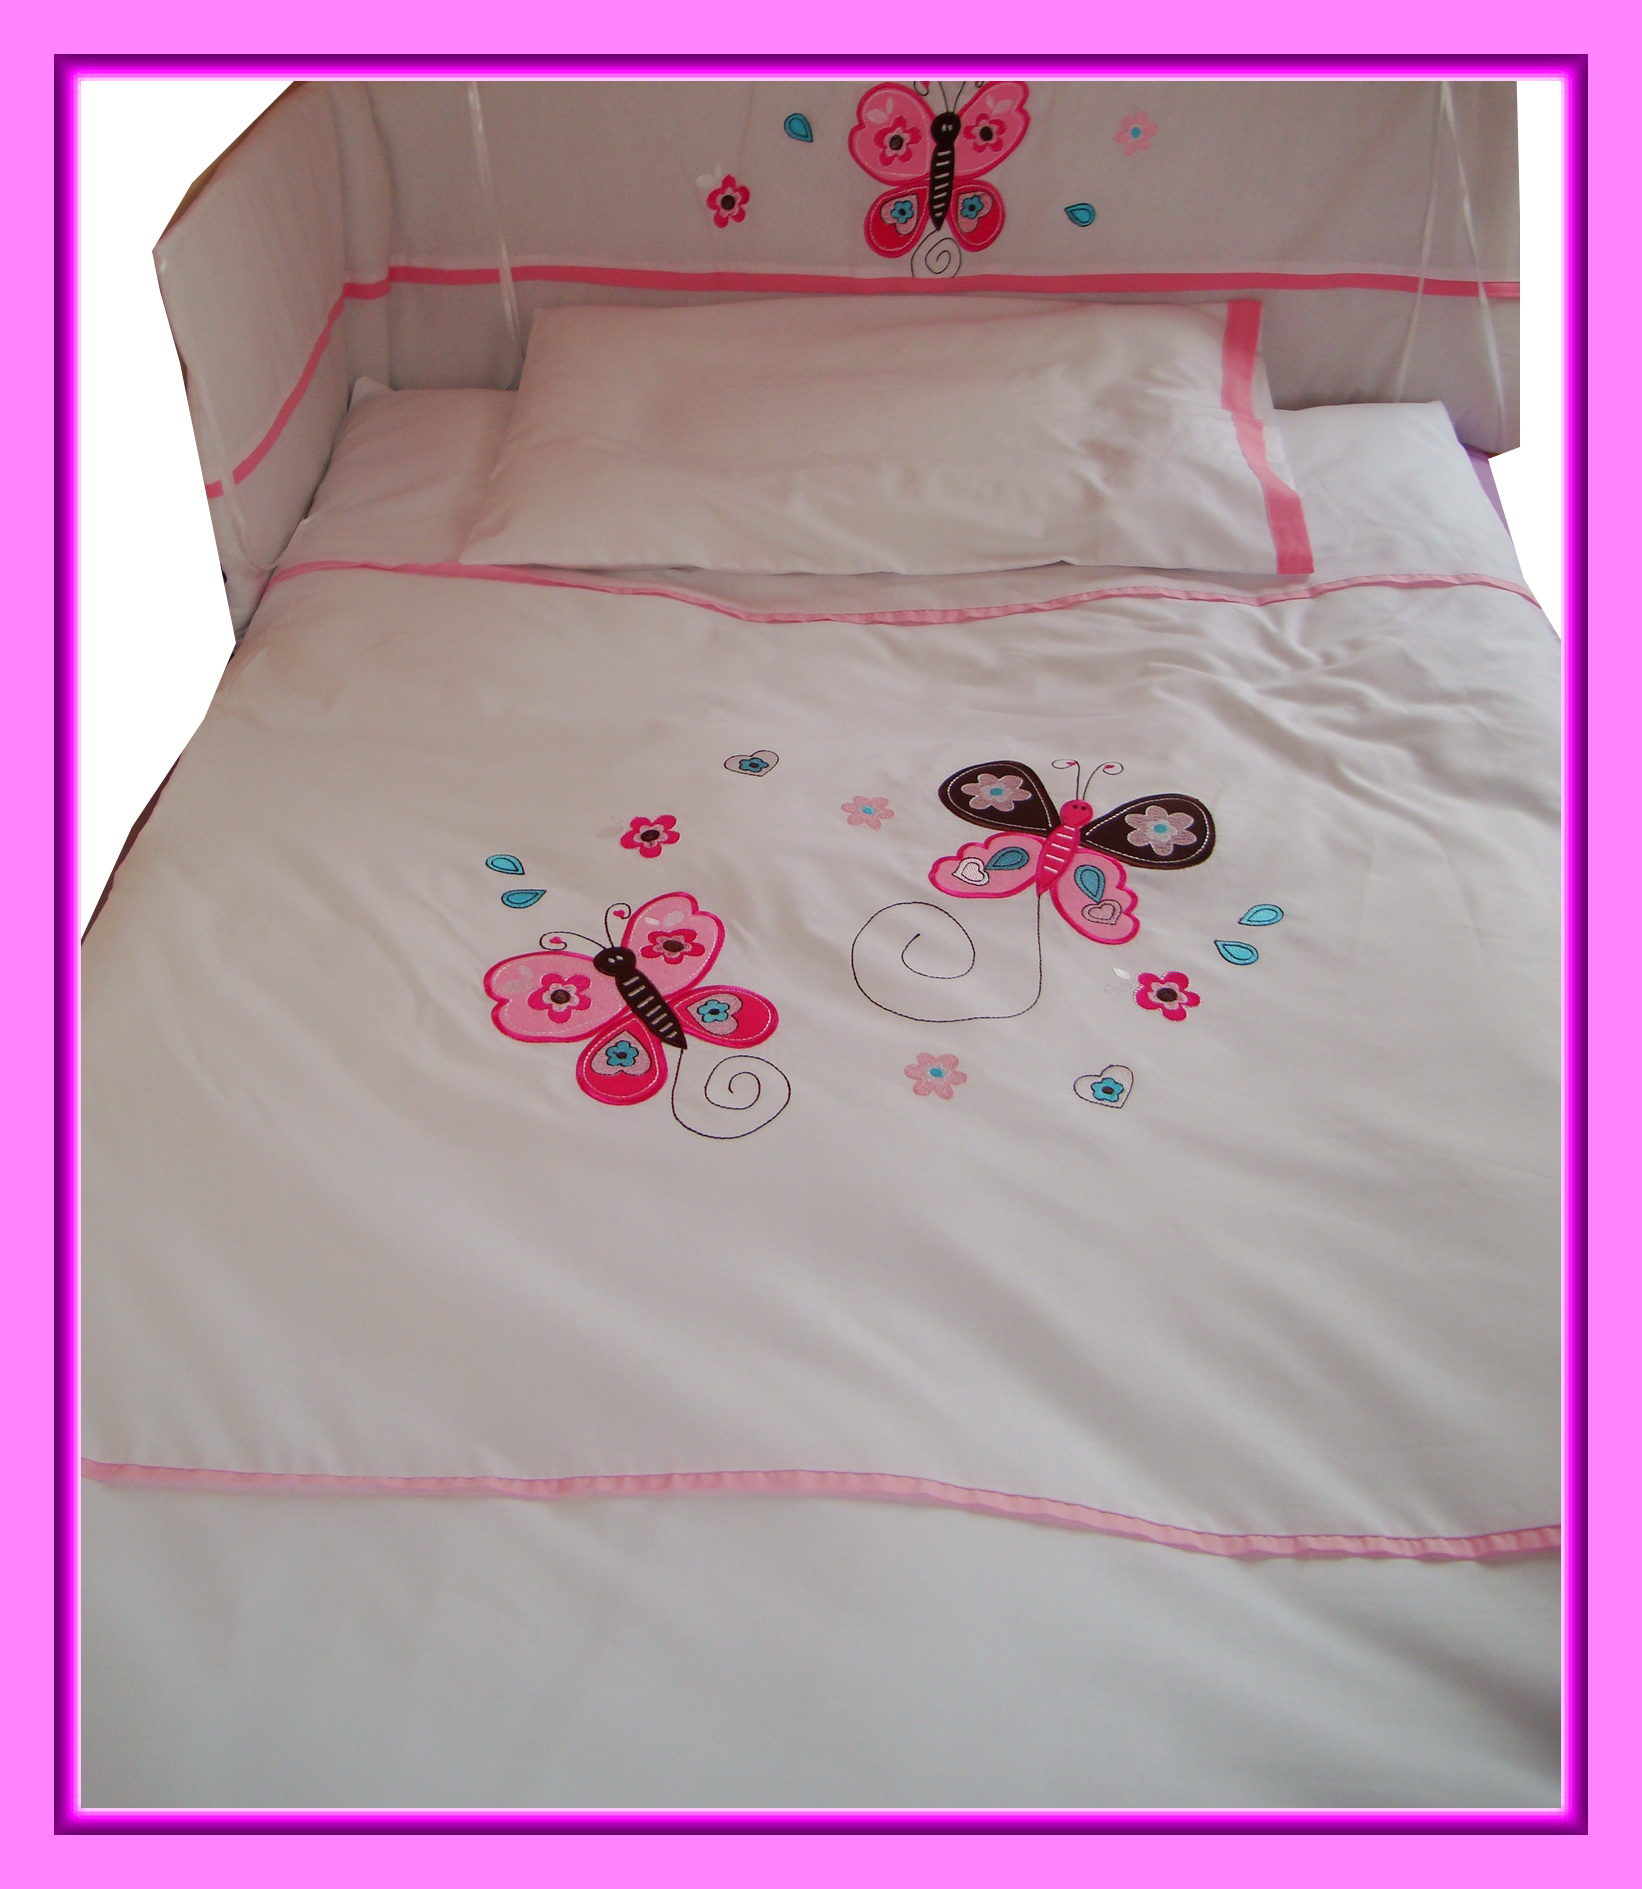 baby bettw sche set schmetterlinge blumen herzen rosa butterfly duvet cover ebay. Black Bedroom Furniture Sets. Home Design Ideas